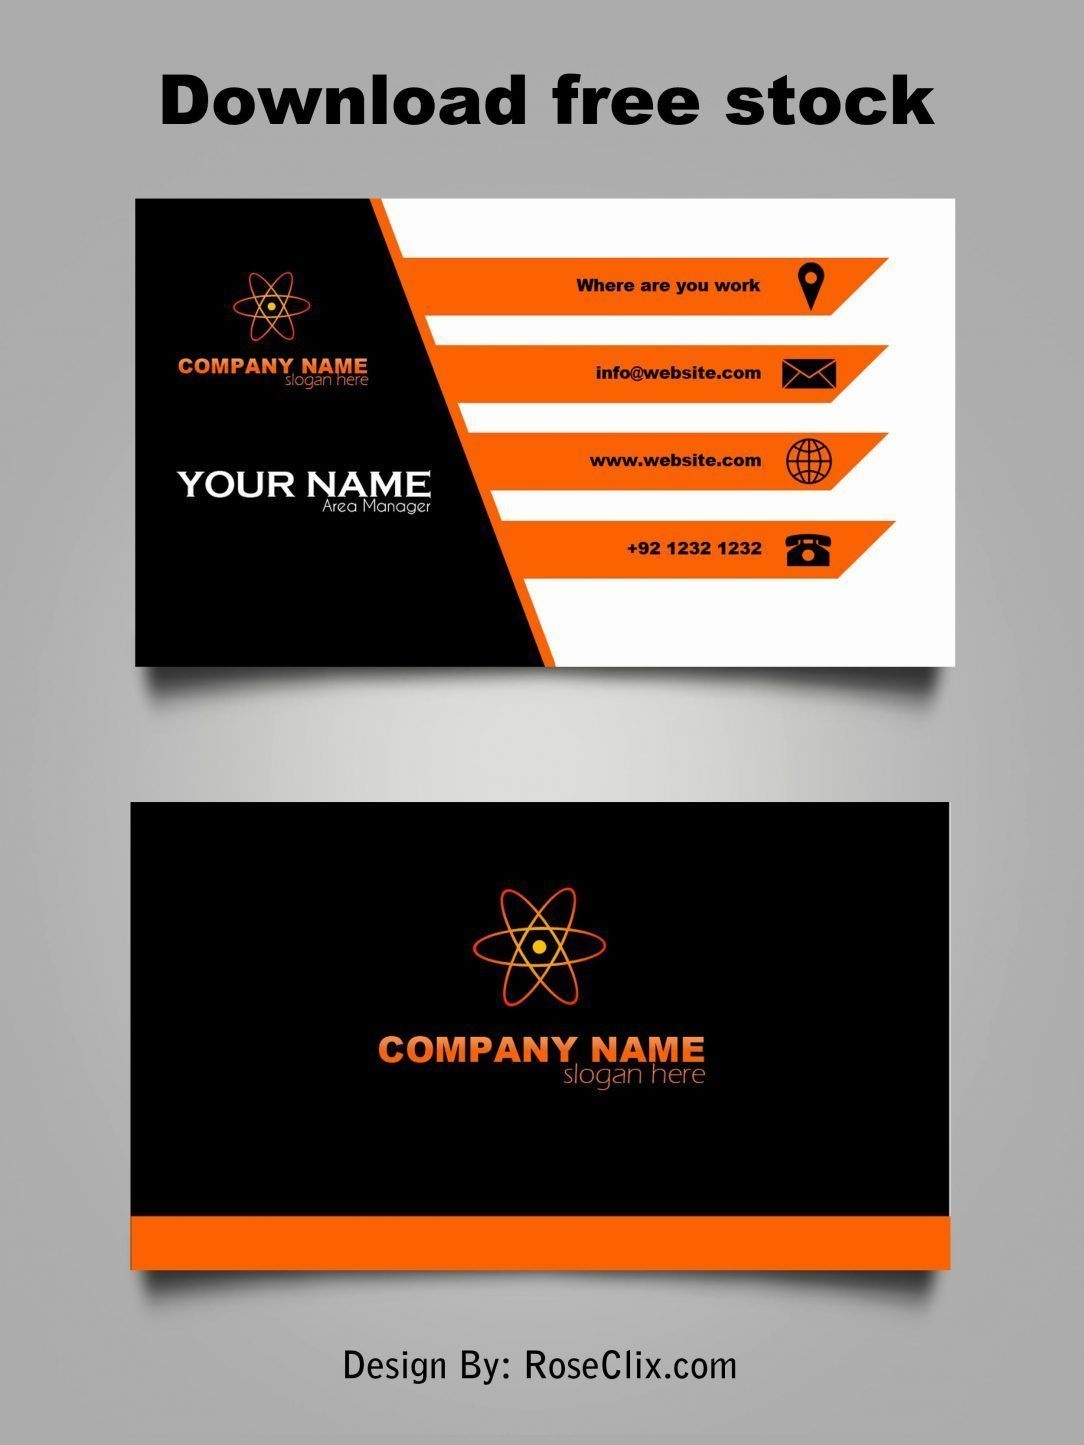 Make Your Custom Free Business Card Printable No Download For Free - Free Printable Cards No Download Required